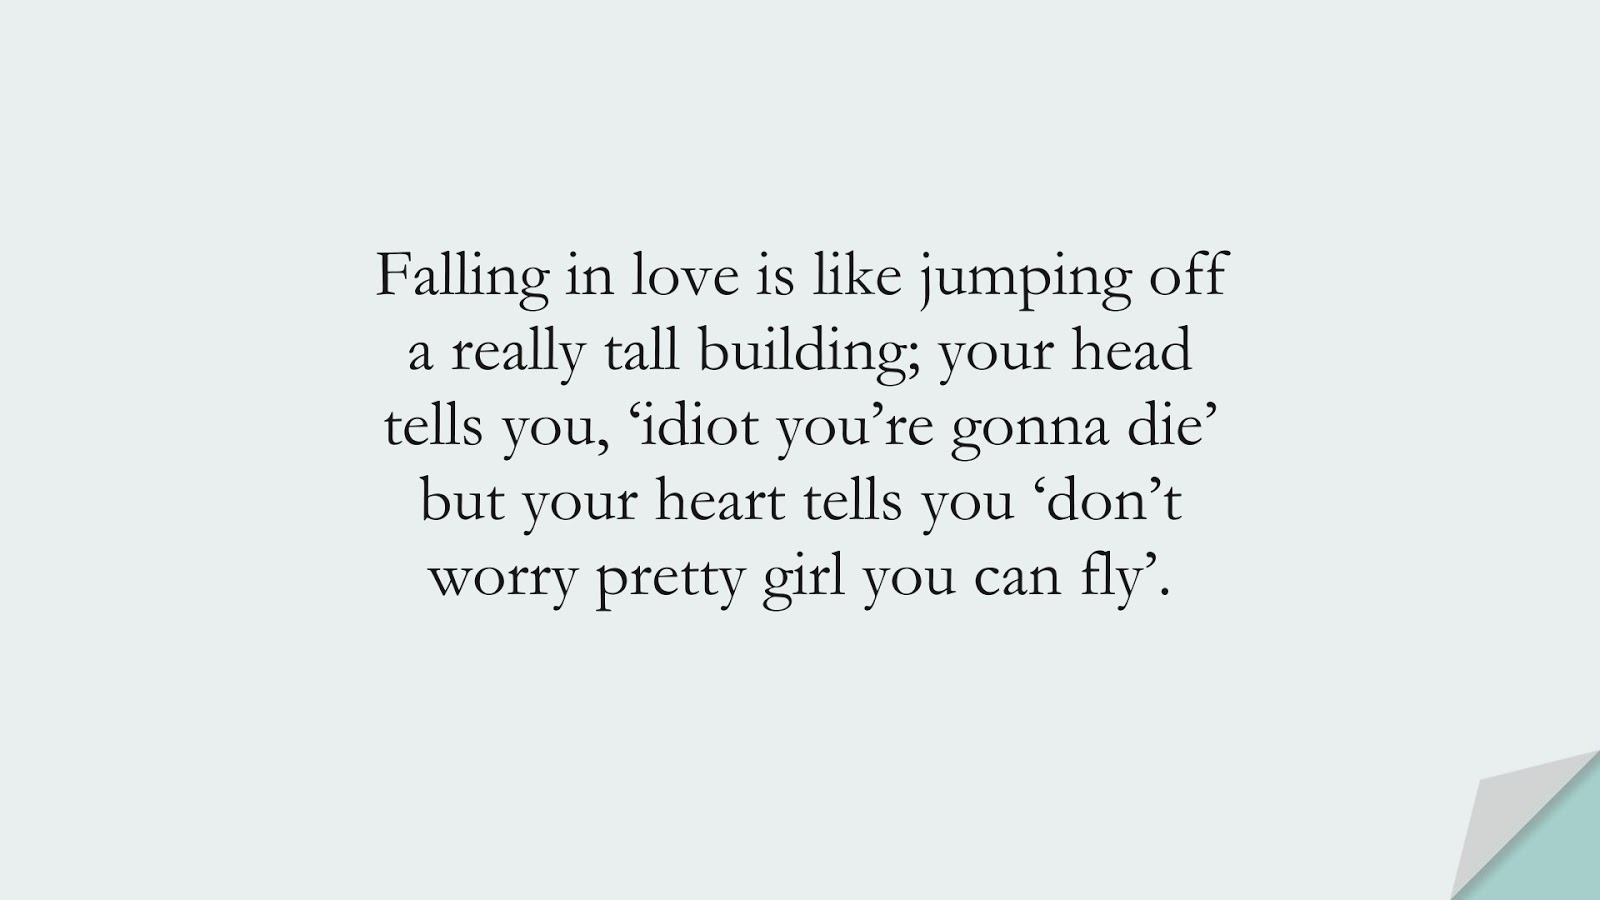 Falling in love is like jumping off a really tall building; your head tells you, 'idiot you're gonna die' but your heart tells you 'don't worry pretty girl you can fly'.FALSE